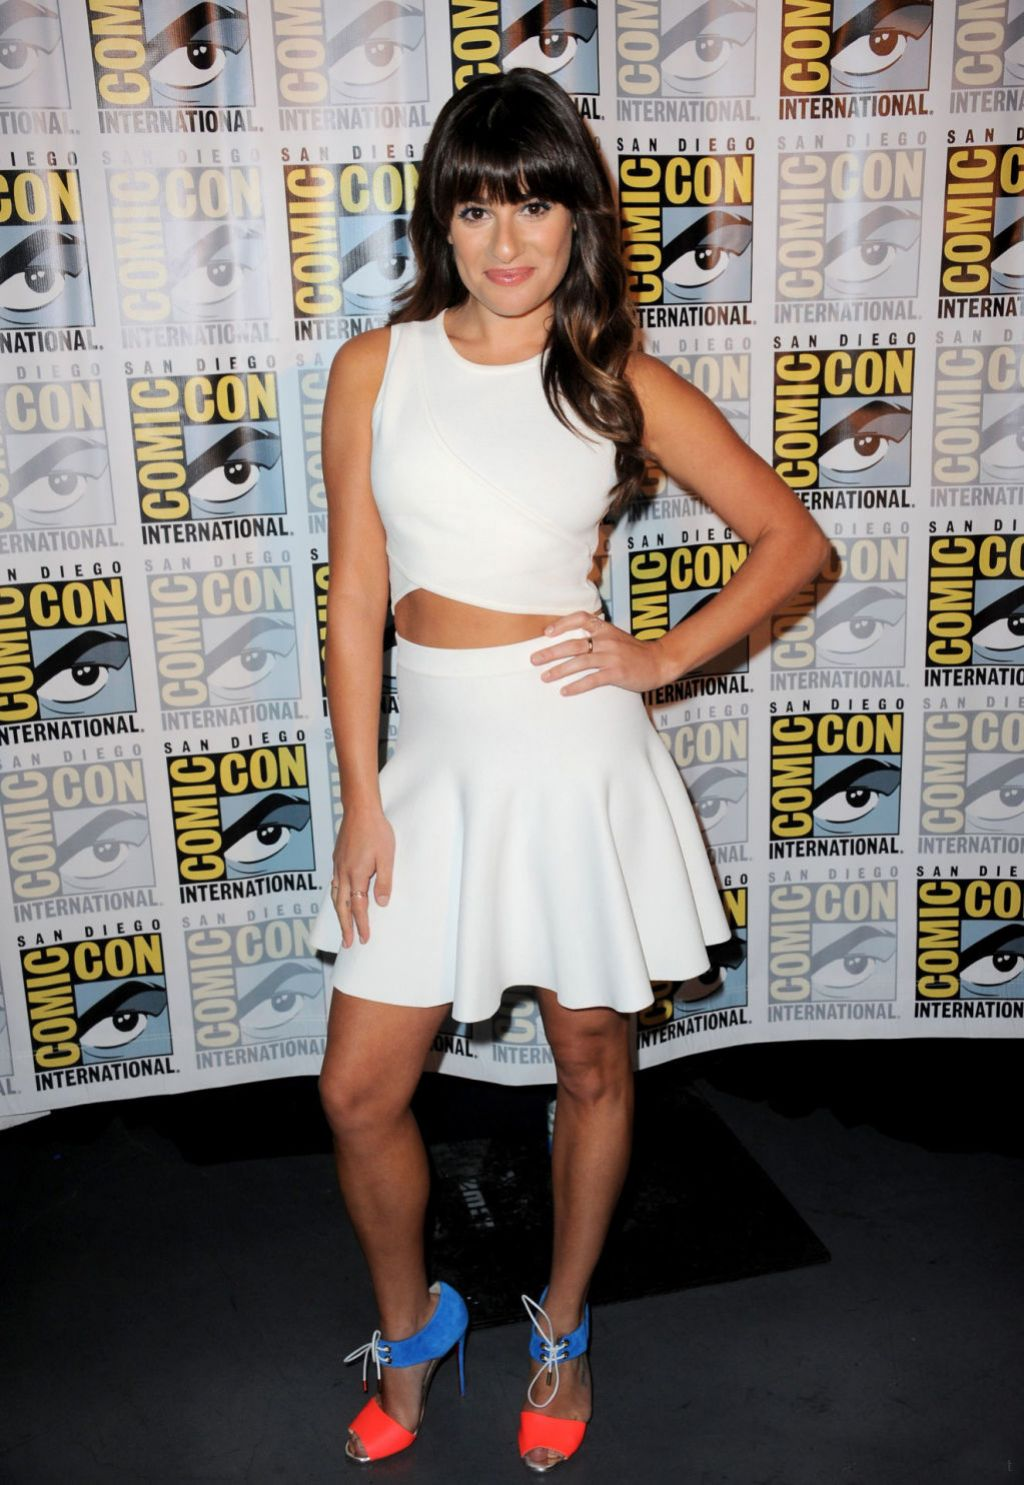 lea-michele-american-horror-story-and-scream-queens-panel-at-comic-con-international-2015_